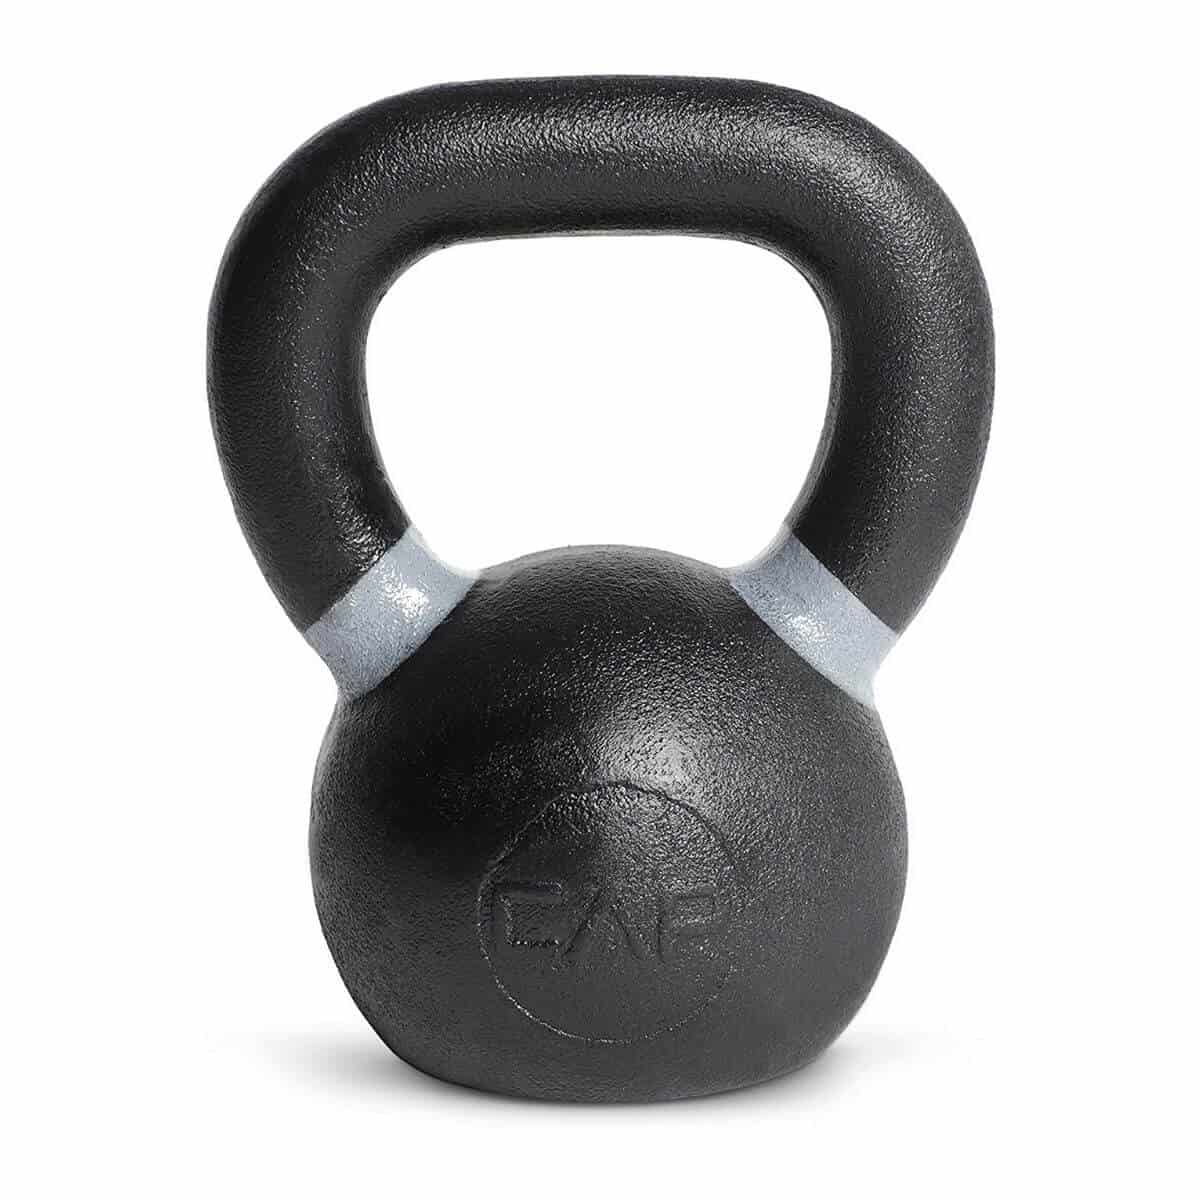 Black kettlebell with grey rings.